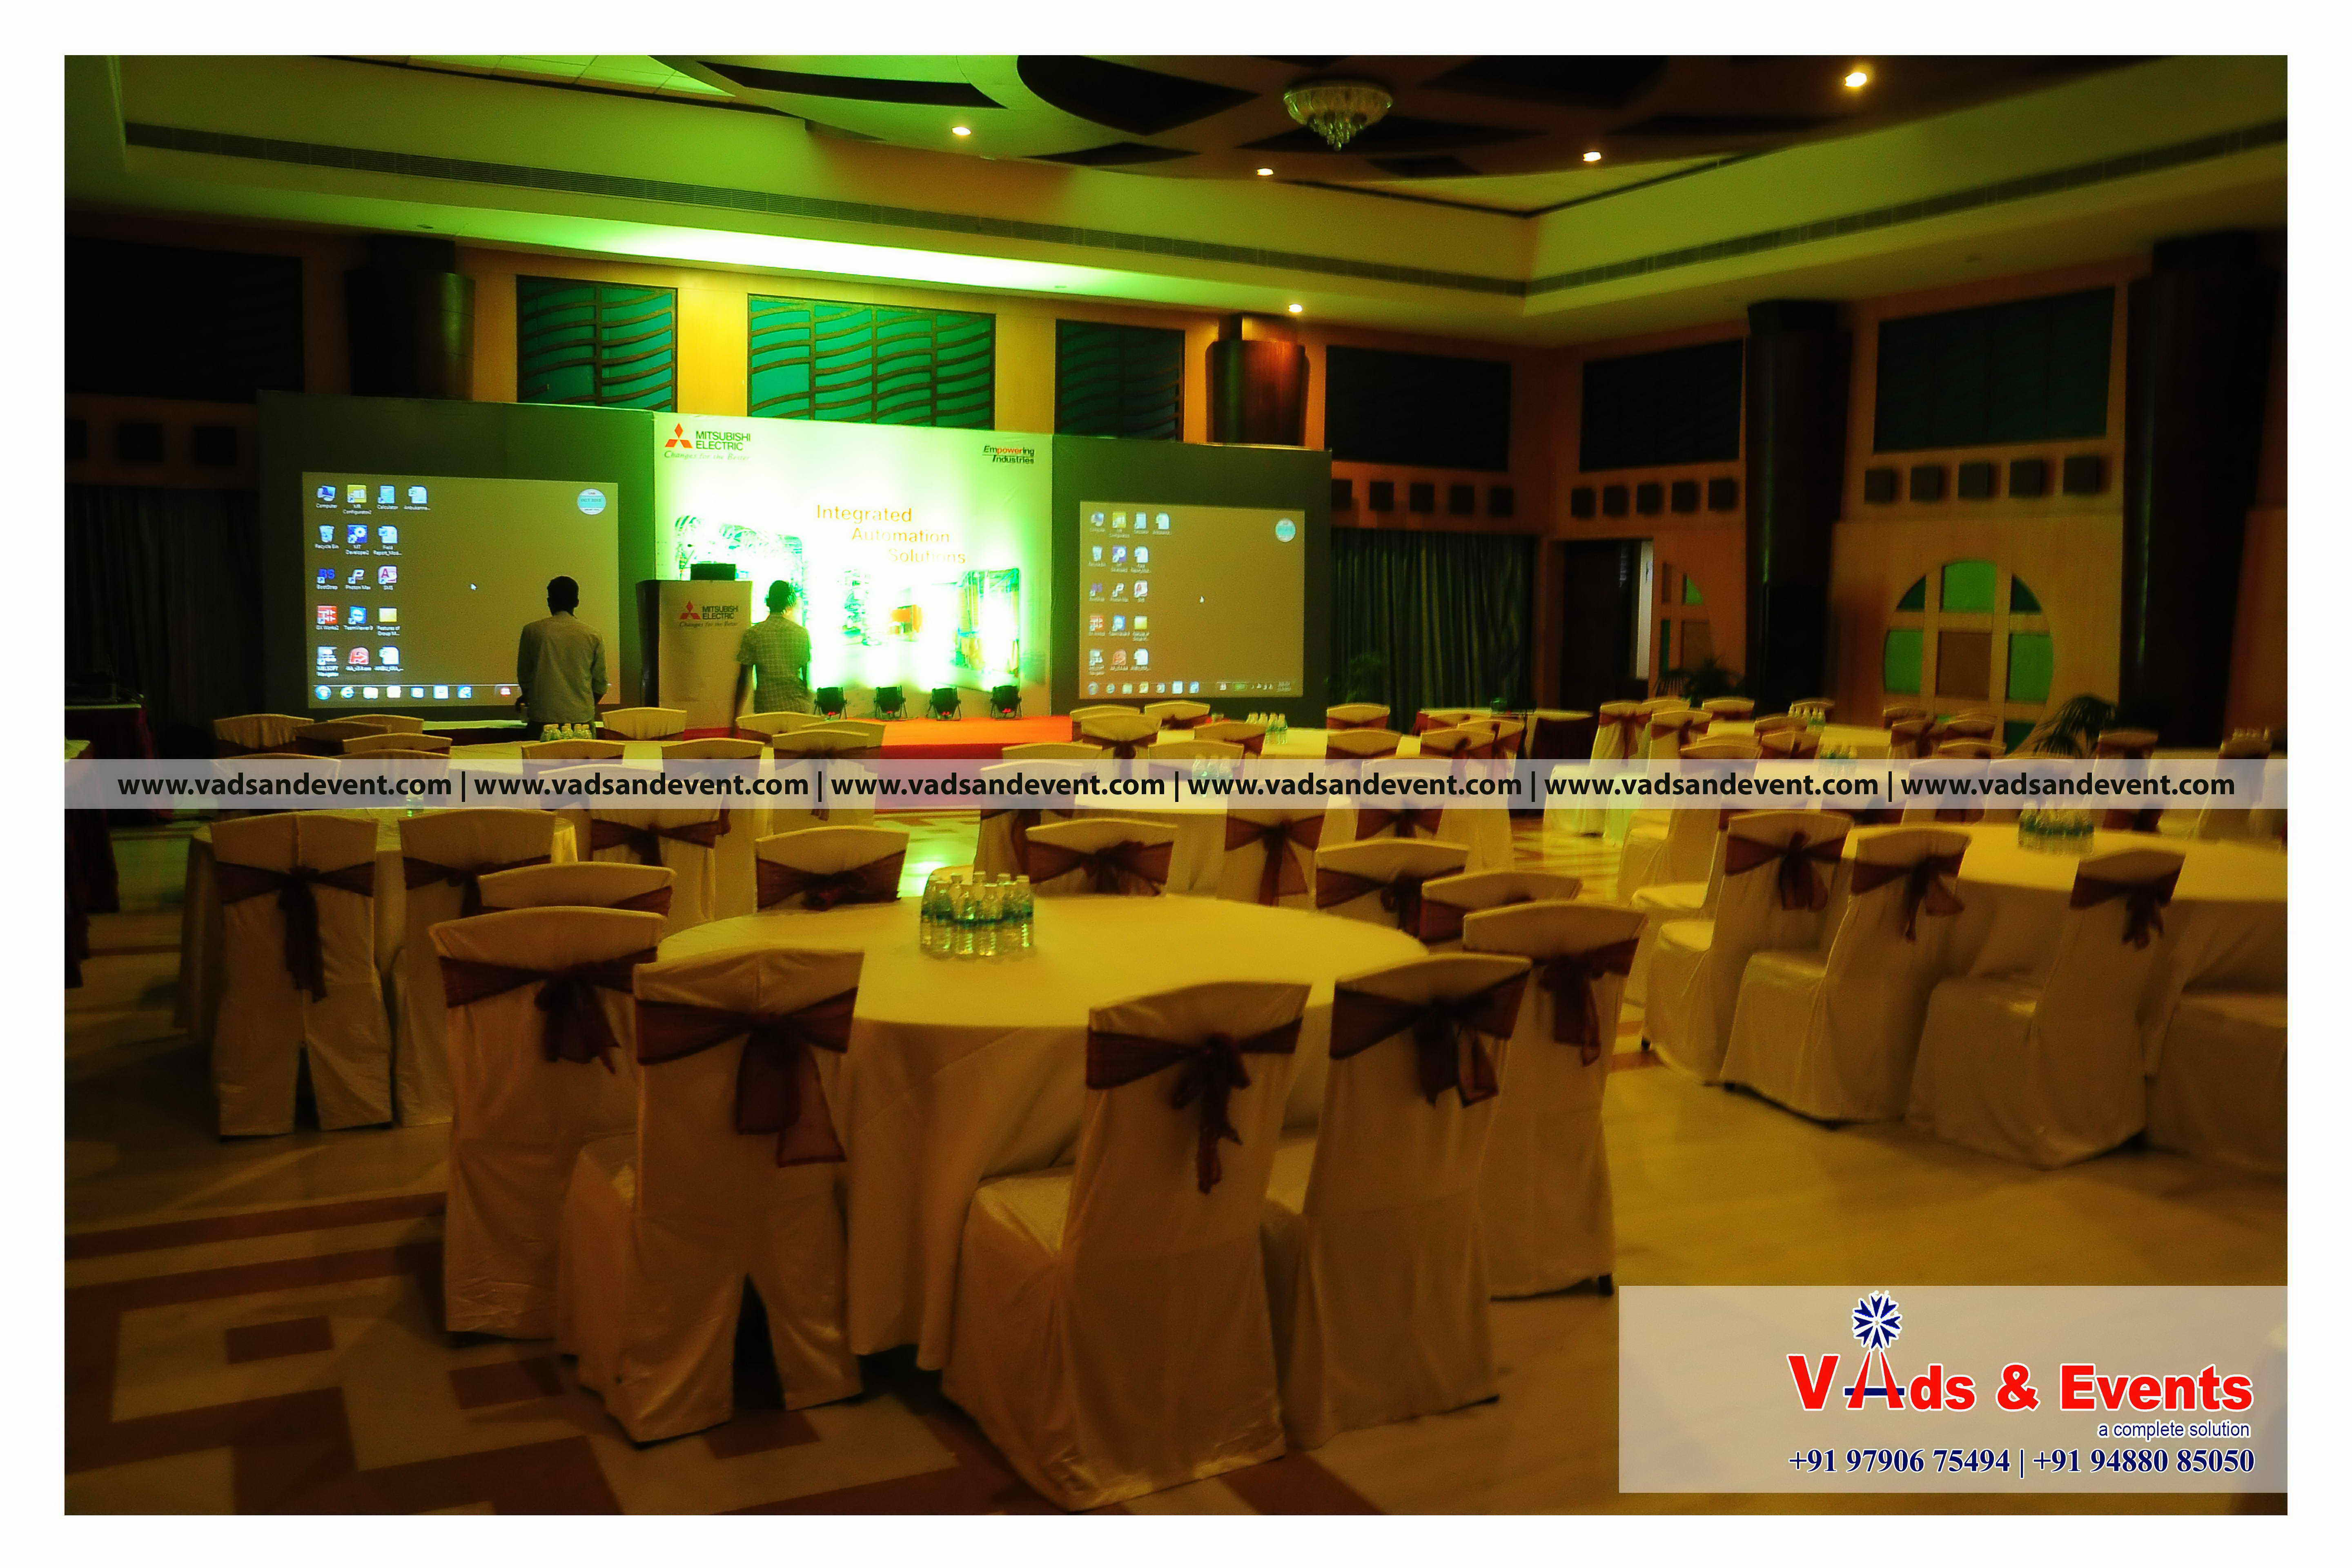 V ADS AND EVENTS PONDICHERRY-Corporate events in Pondicherry,Corporate events in Villupuram,Corporate events in Cuddalore,Corporate events in chidambaram,Corporate events in Neyveli,Entertainment shows in Pondicherry,Entertainment shows in Villupuram,Entertainment shows in Cuddalore,Entertainment shows in chidambaram,Entertainment shows in Neyveli,Hoardings Advertising in Pondicherry,Hoardings Advertising in Villupuram,Hoardings Advertising in Cuddalore,Hoardings Advertising in chidambaram,Hoardings Advertising in Neyveli,Mobile Hoardings Advertising in Pondicherry,Mobile Hoardings Advertising in Villupuram,Mobile Hoardings Advertising in Cuddalore,Mobile Hoardings Advertising in chidambaram,Mobile Hoardings Advertising in Neyveli,Sales Promotion Activities in Pondicherry,Sales Promotion Activities in Villupuram,Sales Promotion Activities in Cuddalore,Sales Promotion Activities in chidambaram,Sales Promotion Activities in Neyveli,Poster Advertisement in Pondicherry,Poster Advertisement Villupuram,Poster Advertisement Cuddalore,Poster Advertisement chidambaram,Poster Advertisement Neyveli,Banner Advertisement in Pondicherry,Banner Advertisement in Villupuram,Banner Advertisement in Cuddalore,Banner Advertisement in chidambaram,Banner Advertisement in Neyveli,Cut Out Advertisement in Pondicherry,Cut Out Advertisement Villupuram,Cut Out Advertisement Cuddalore,Cut Out Advertisement chidambaram,Cut Out Advertisement Neyveli,Get together party in Pondicherry,Get together party in Villupuram,Get together party in Cuddalore,Get together party in chidambaram,Get together party in Neyveli,conference management in Pondicherry,conference management in Villupuram,conference management in Cuddalore,conference management in chidambaram,conference management in Neyveli